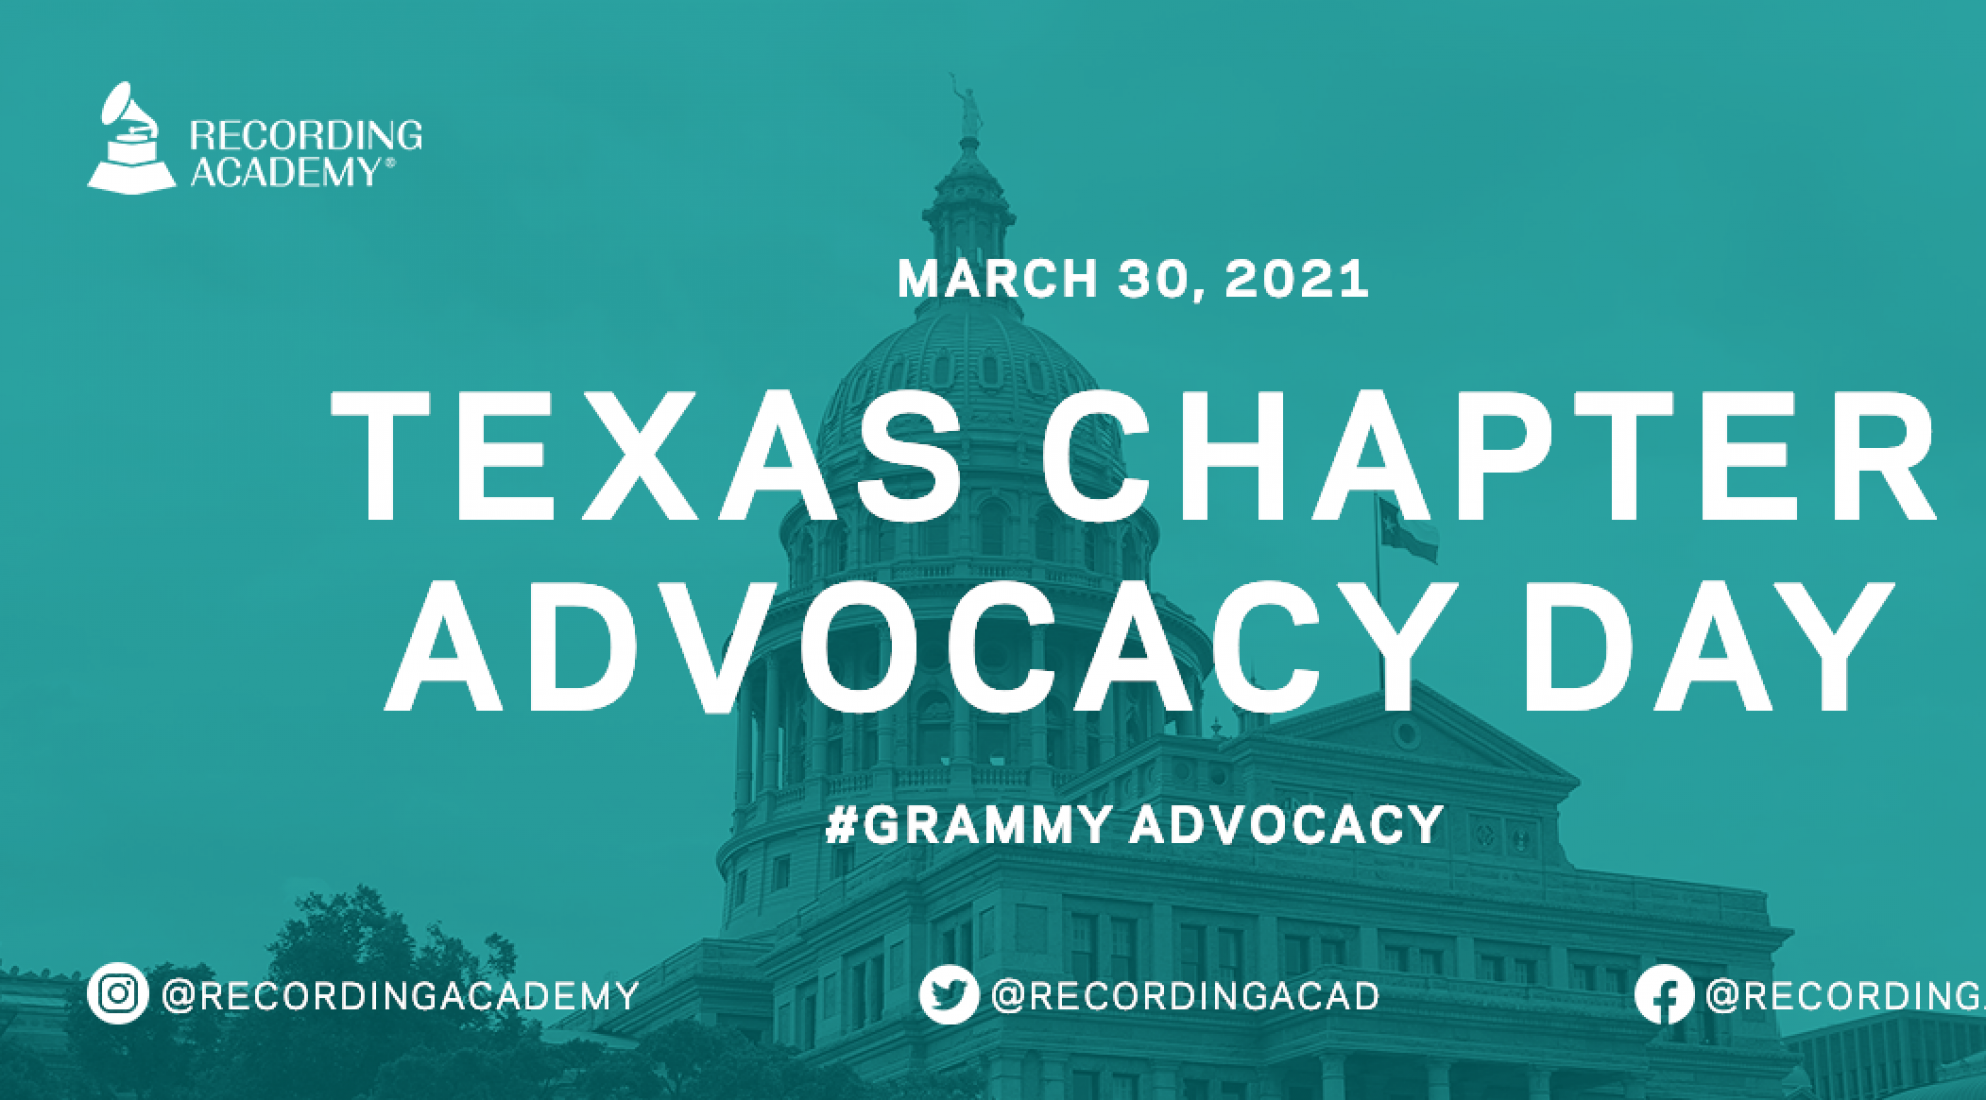 Texas Chapter Advocacy Day